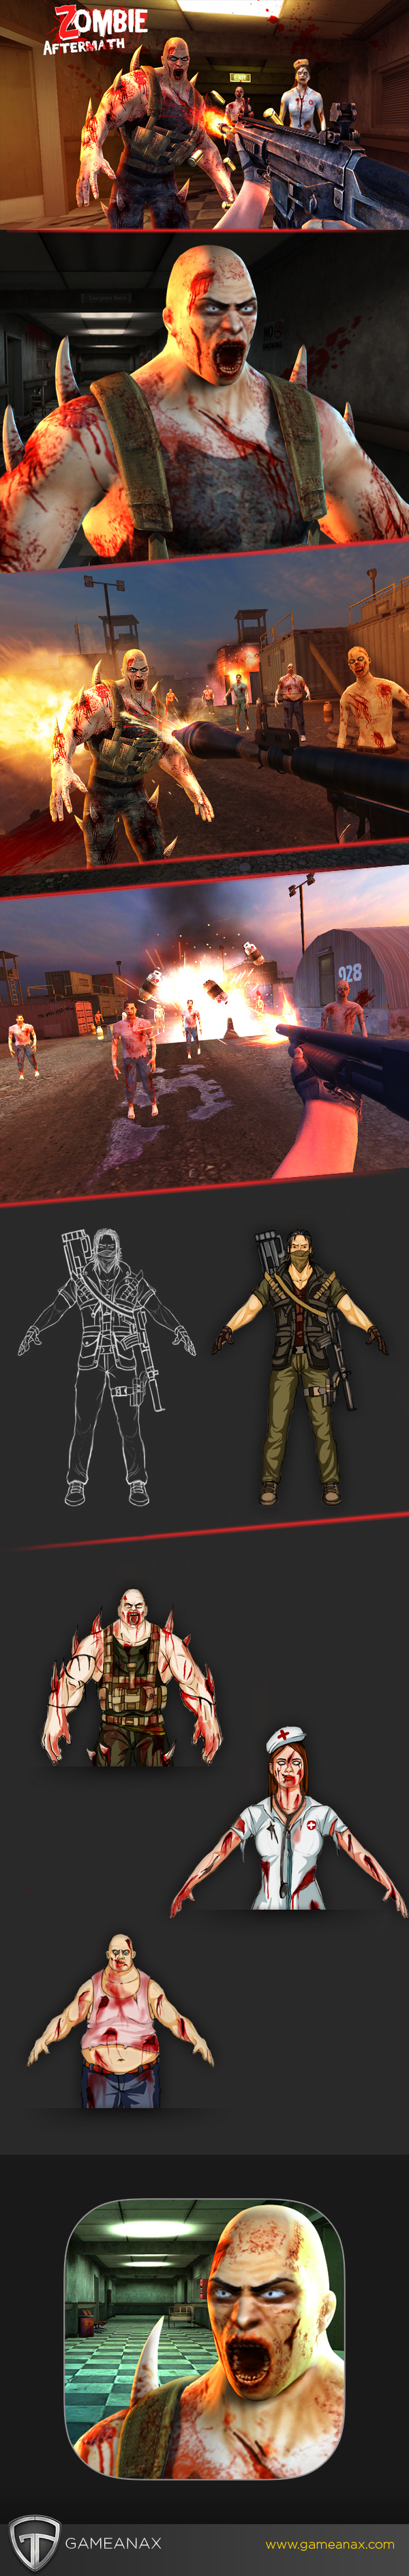 UI ux zombies zombie game mobile game graphics art design 3d art